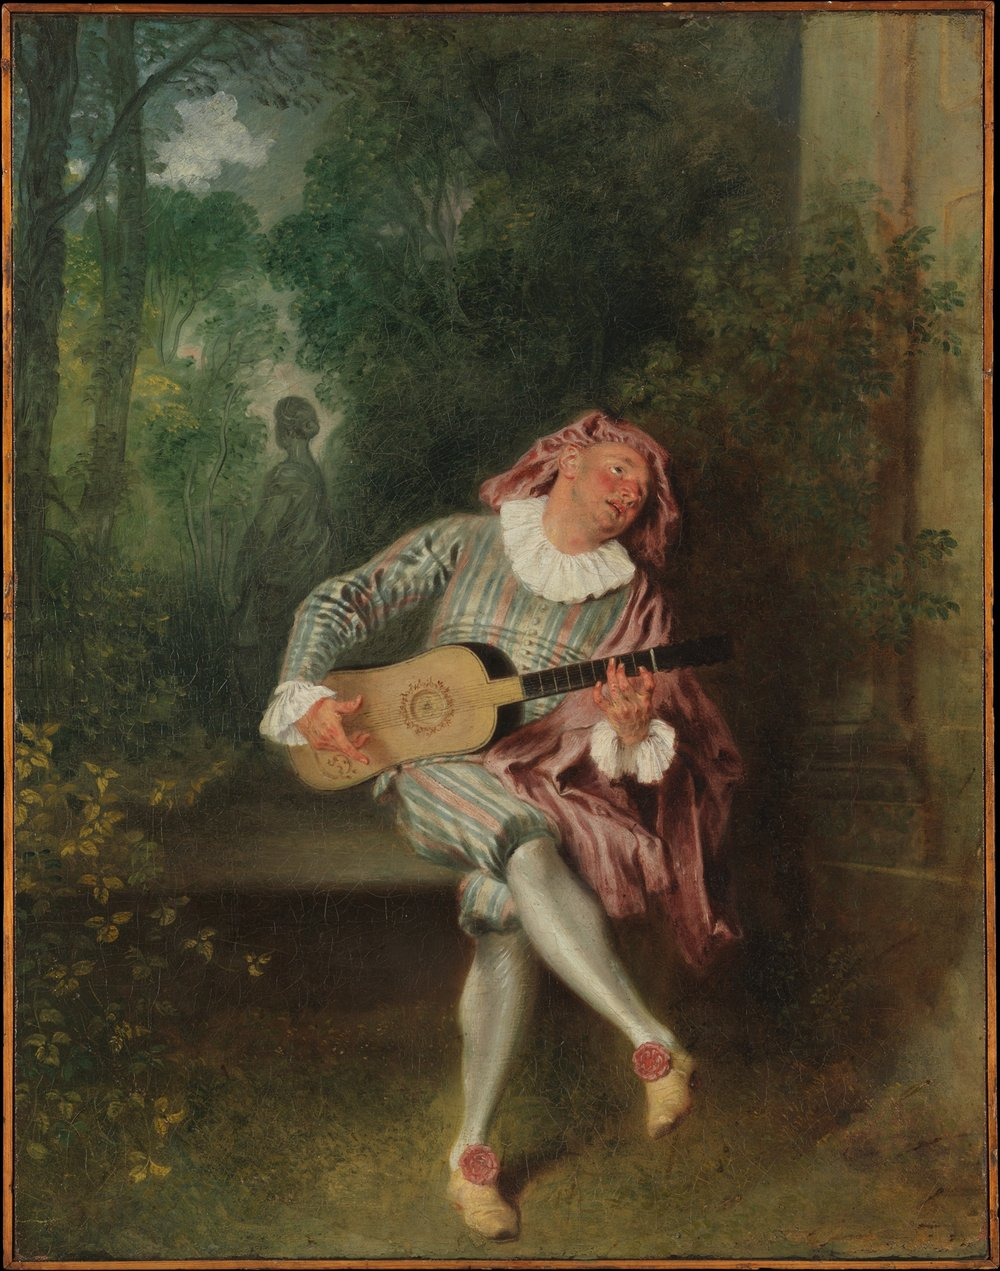 Antoine Watteau (1684-1721):  Mezzetin         (1733). Courtesy of the Metropolitan Museum of Art - corresponds to Godowsky  Watteau-Paysage  on the CD.